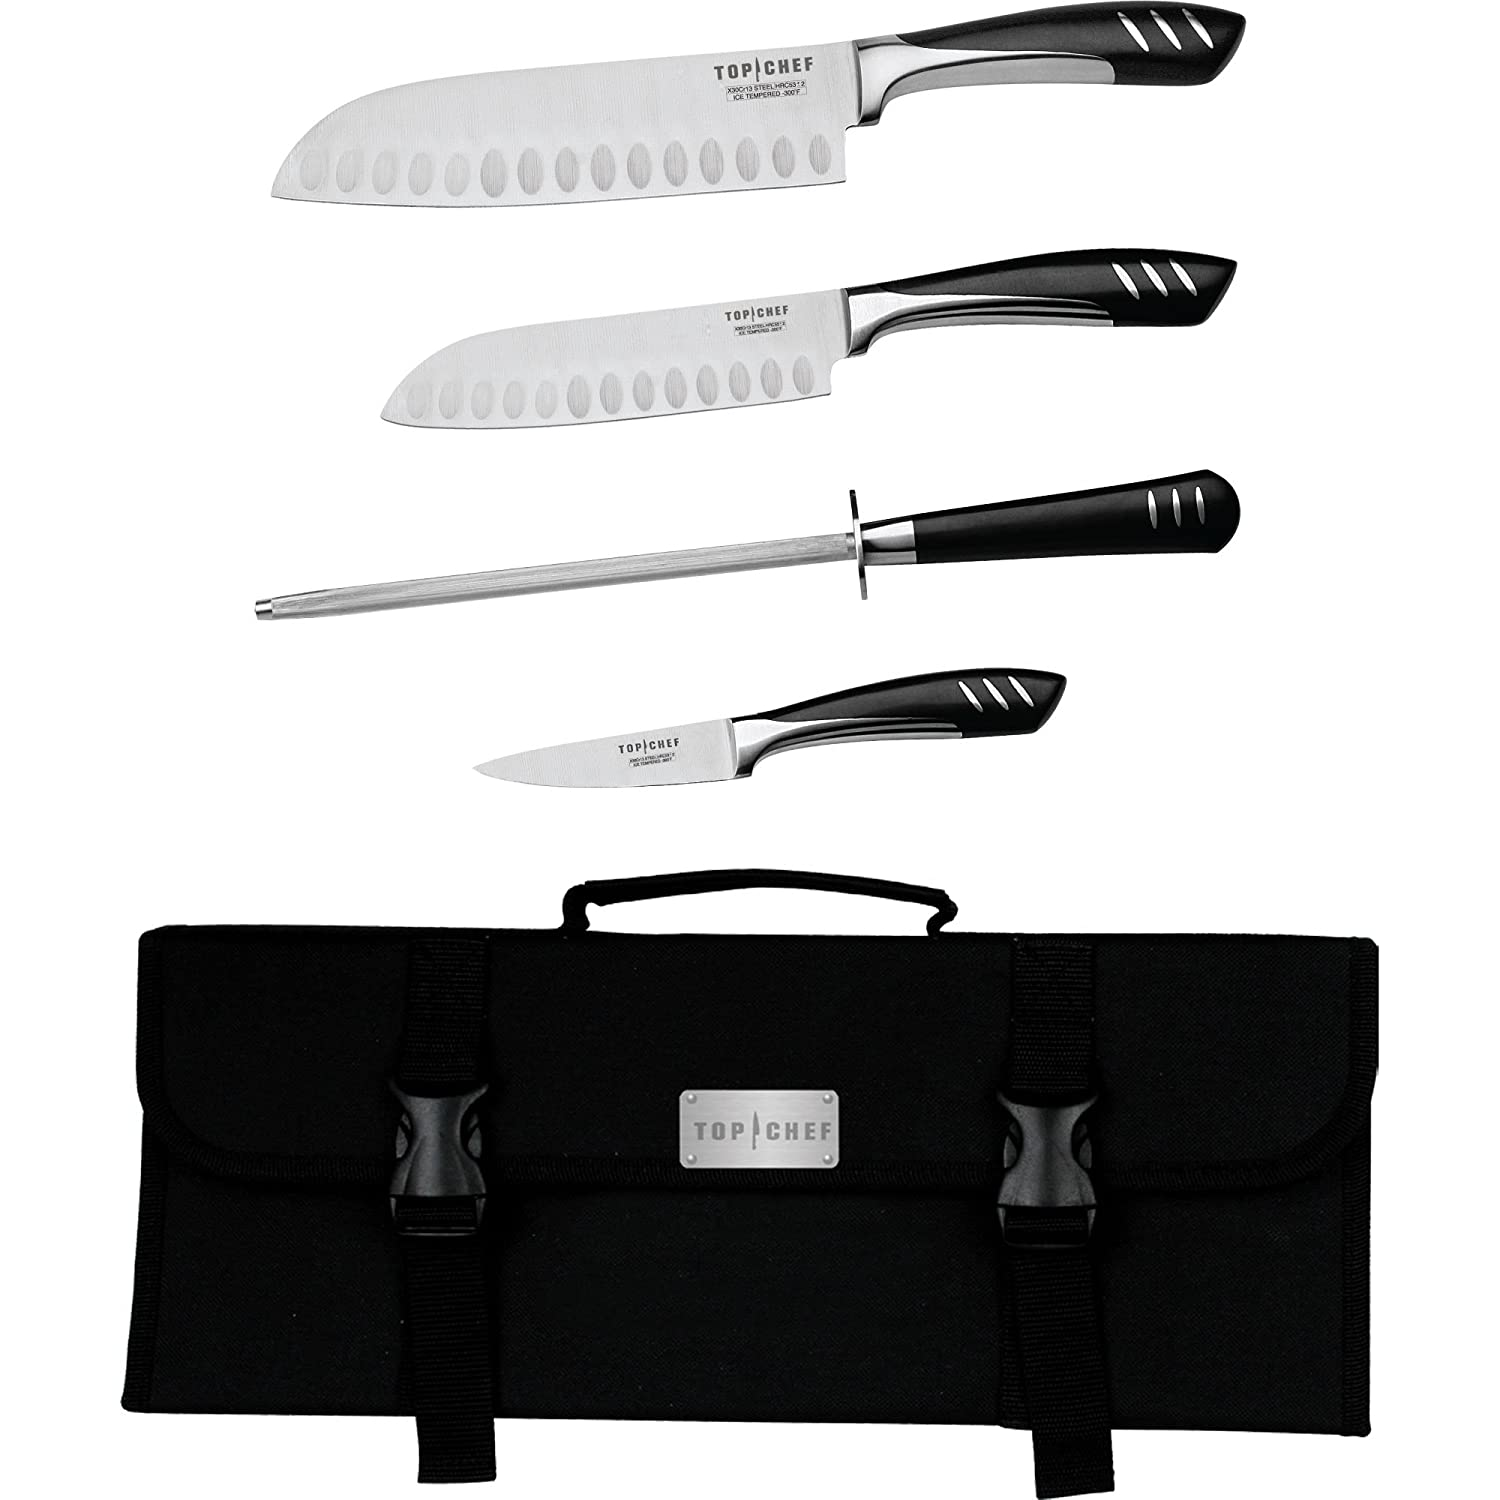 Amazon com top chef by master cutlery 5 piece chef basic knife set with nylon carrying case boxed knife sets kitchen dining